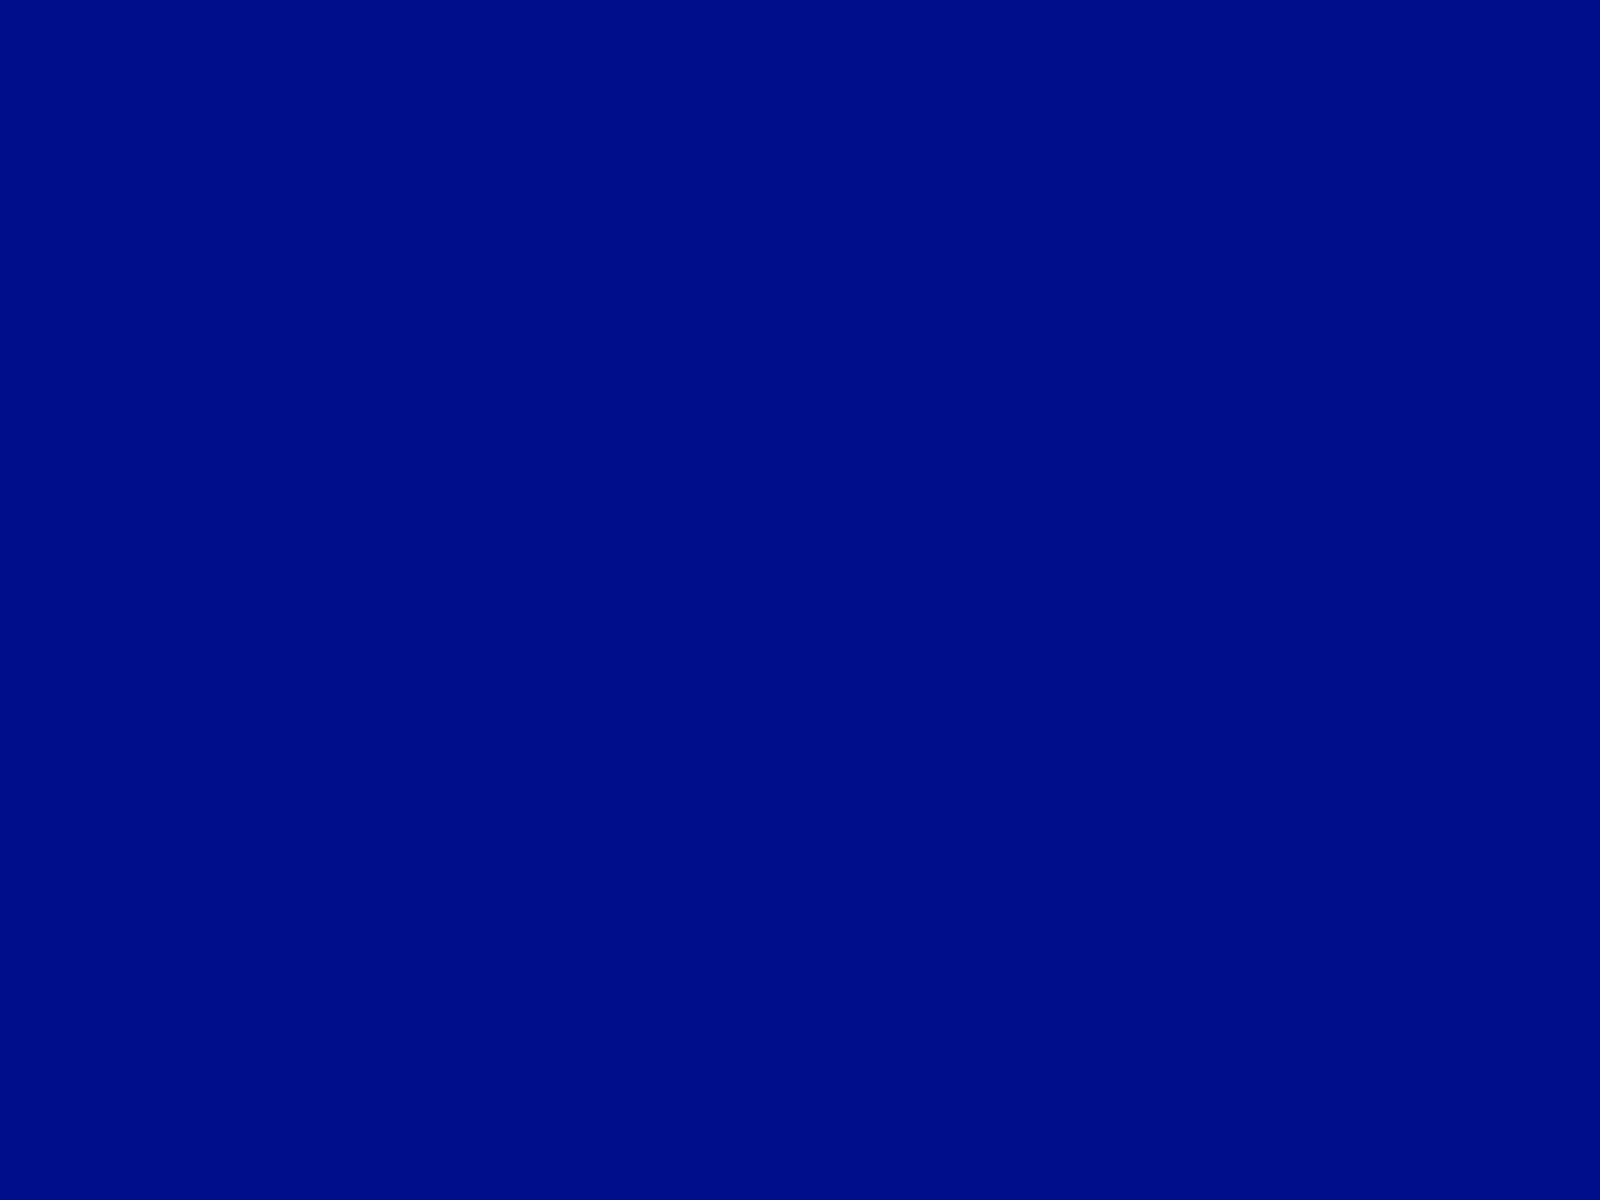 1600x1200 Phthalo Blue Solid Color Background